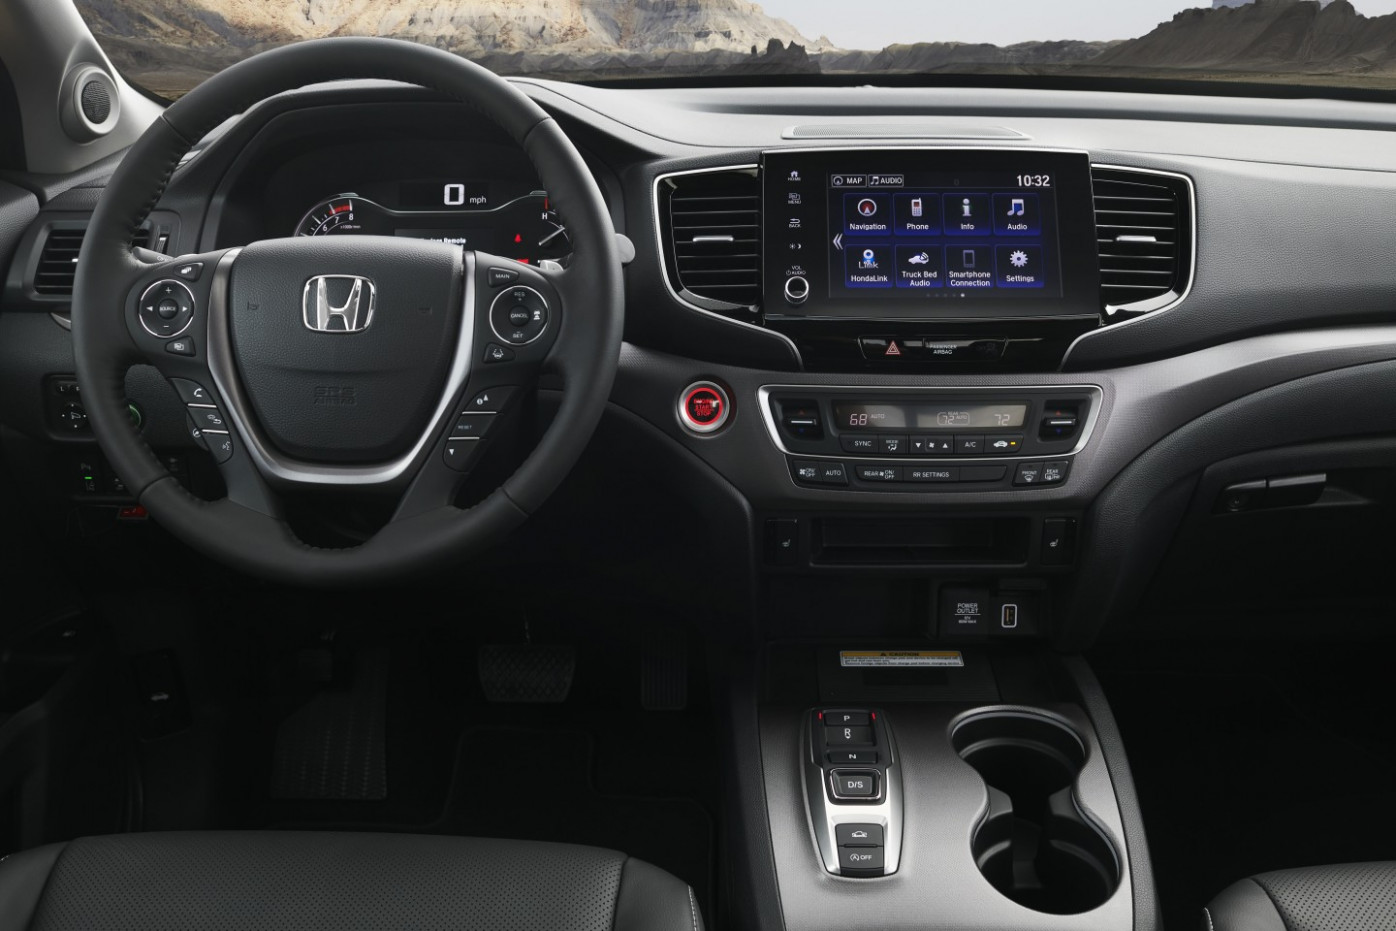 New Model and Performance 2022 Honda Ridgeline Volume Knob